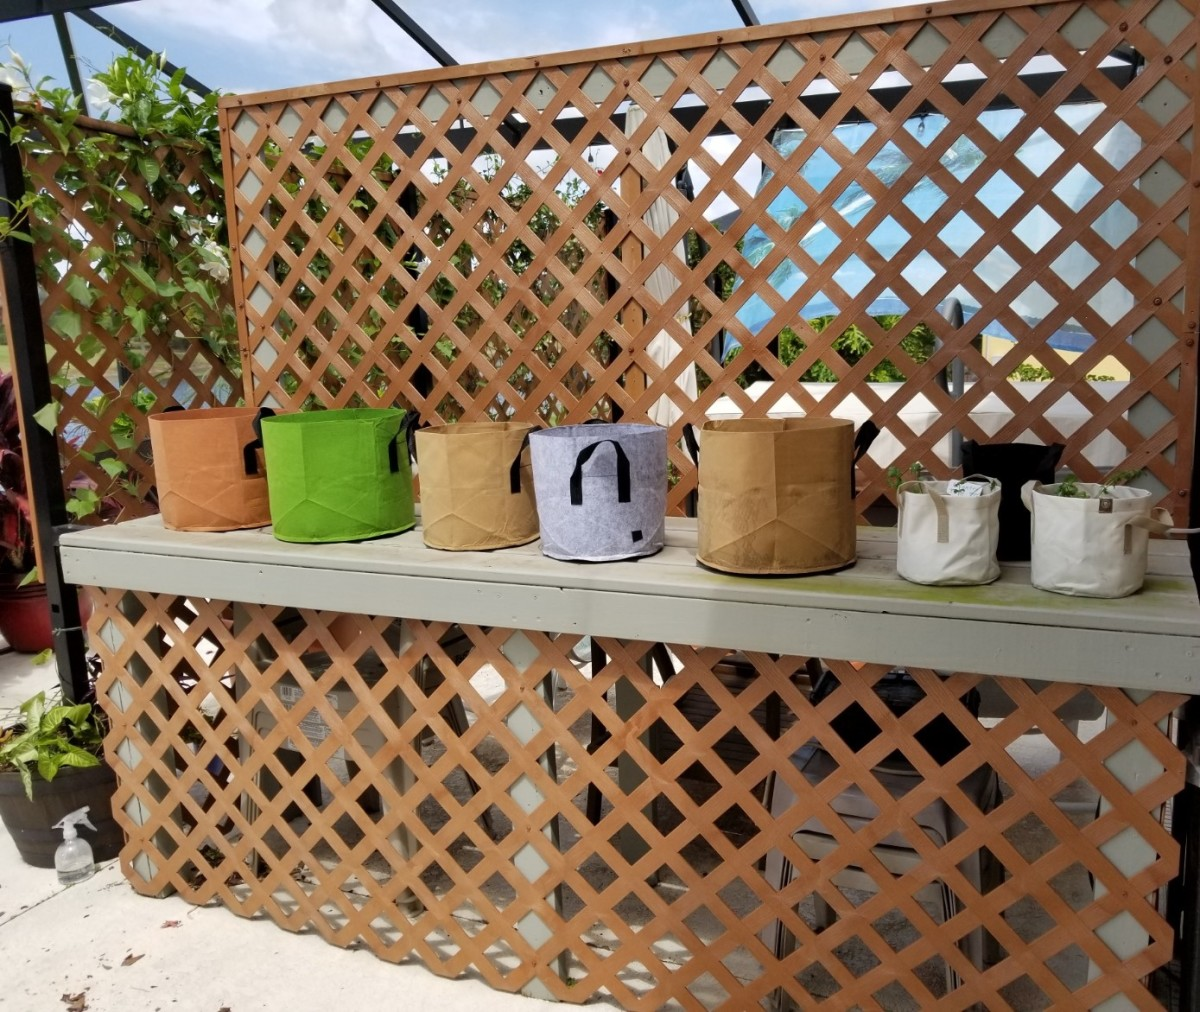 May 1 - The smaller grow pots are at easy-working height here. The cucumbers will climb on the trellis.